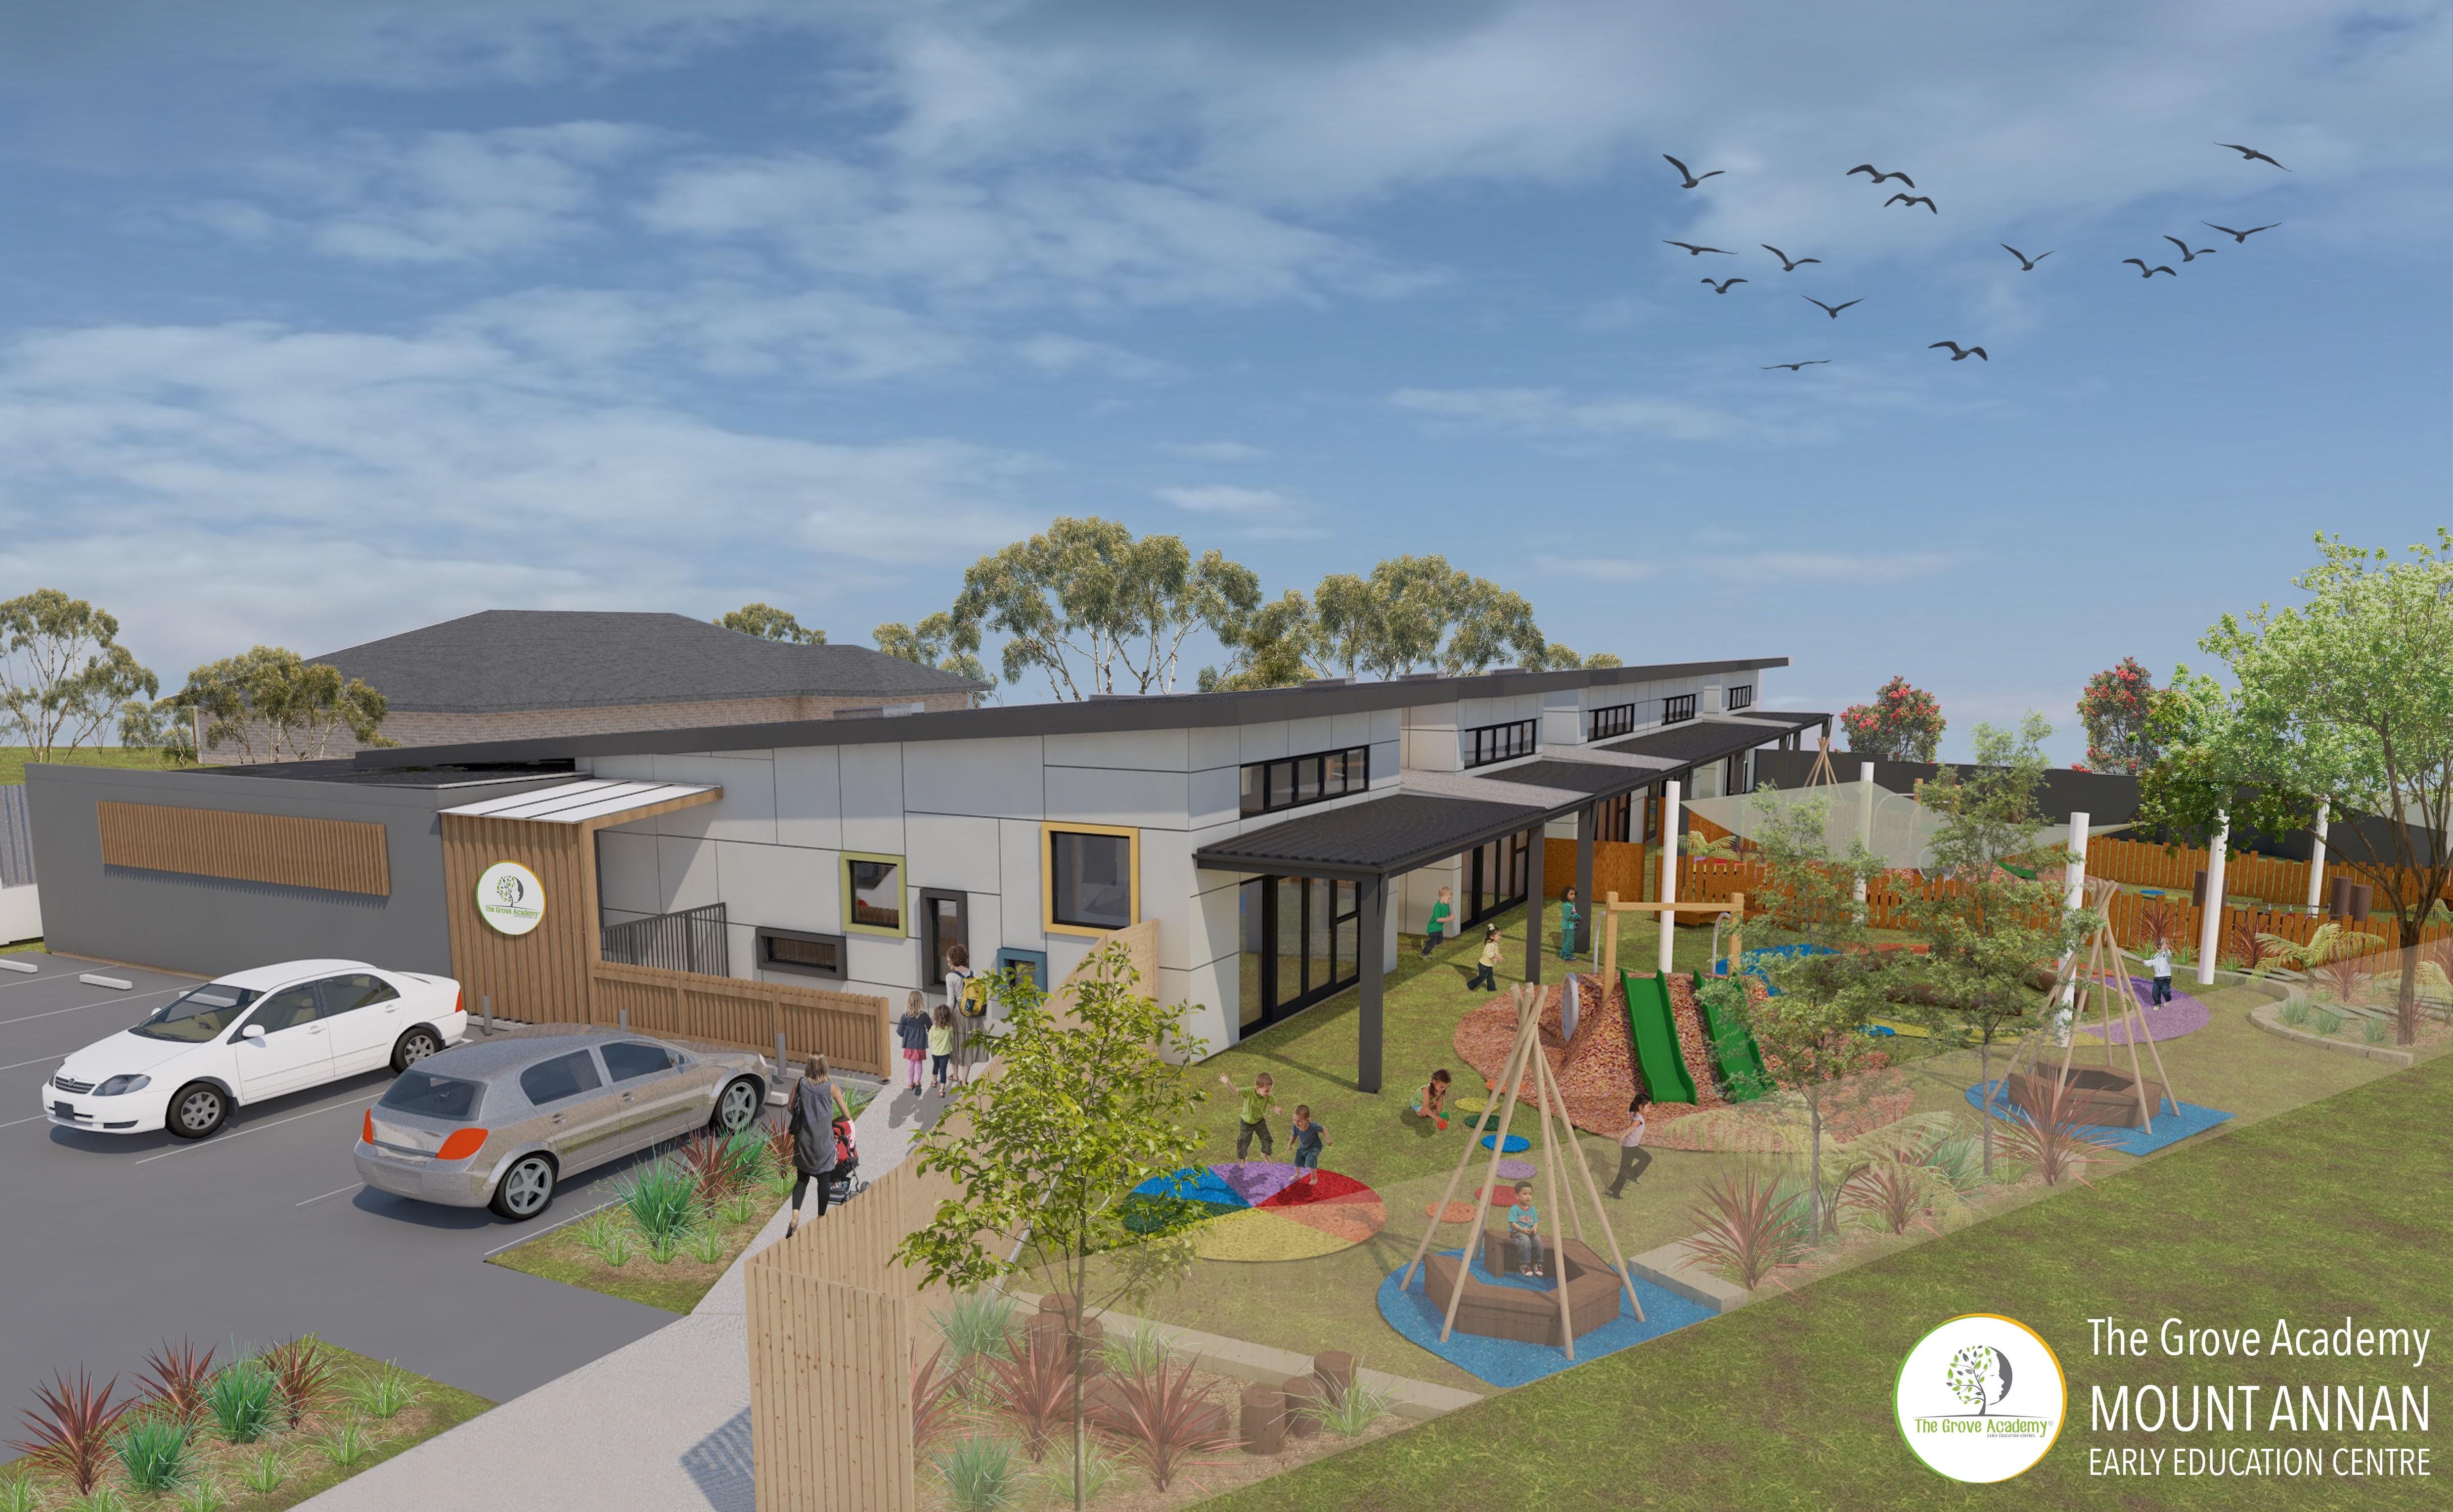 Mount Annan childcare daycare